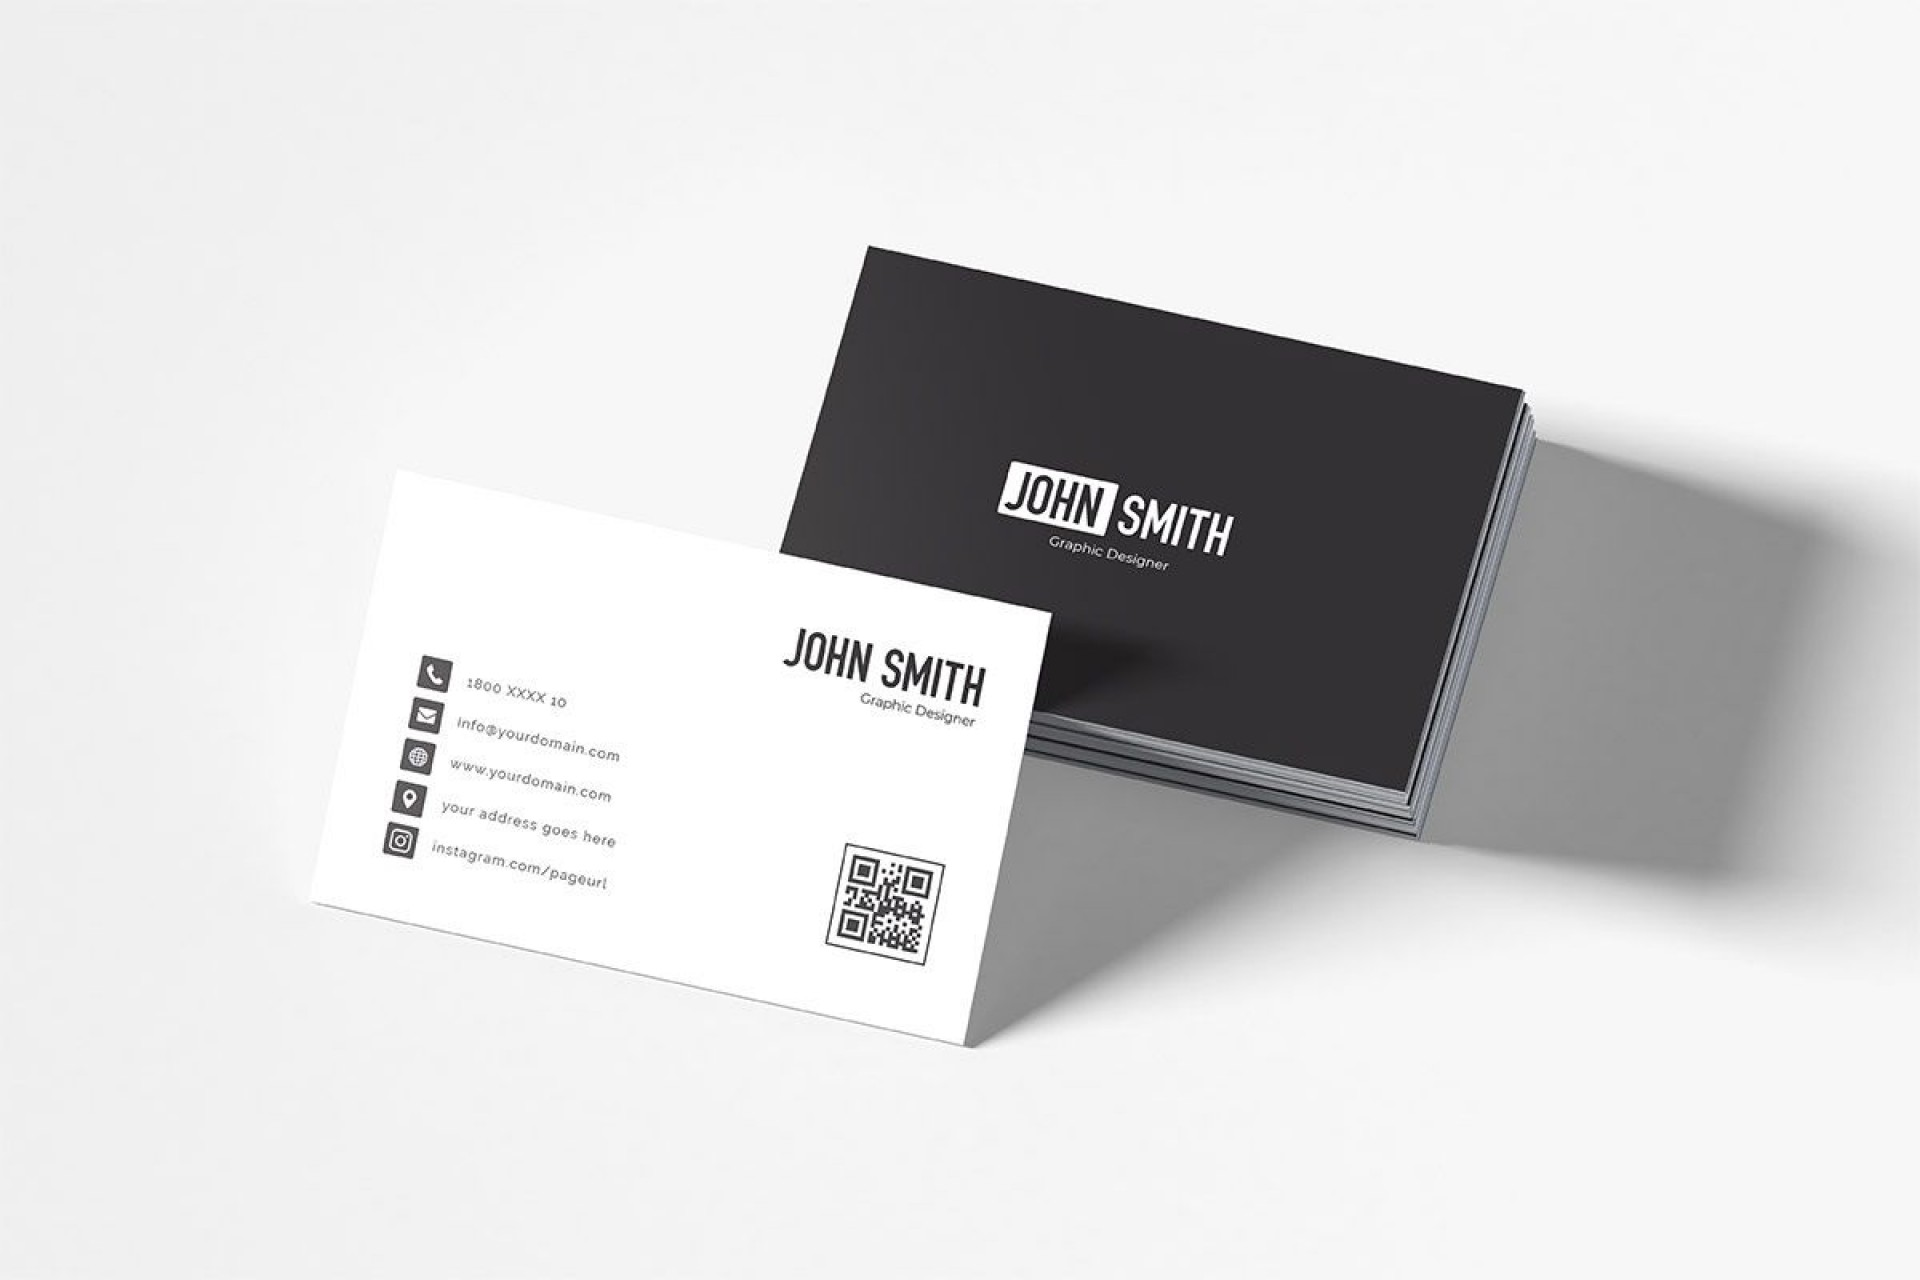 007 Excellent Minimalist Busines Card Template Psd Example 1920